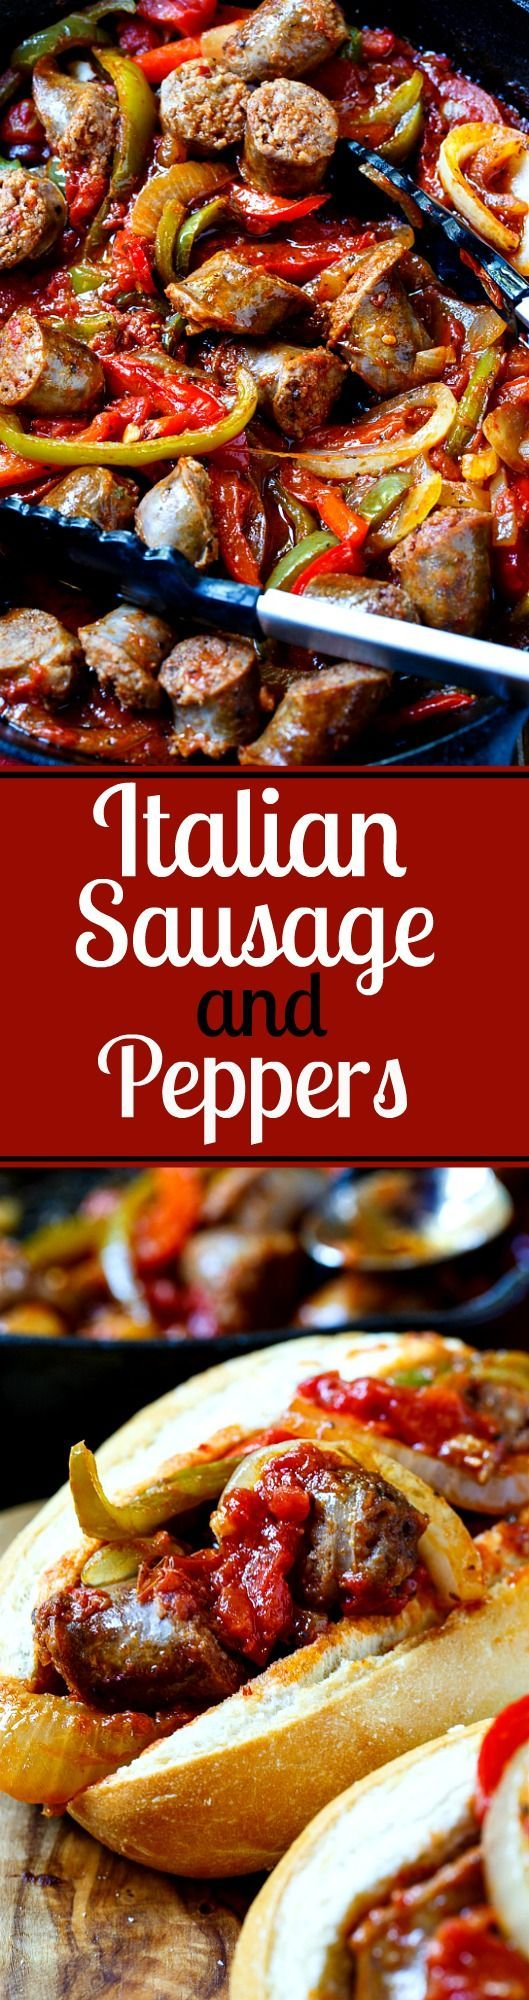 Italian Sausage and Peppers makes an easy weeknight meal!                                                                                                                                                                                 More